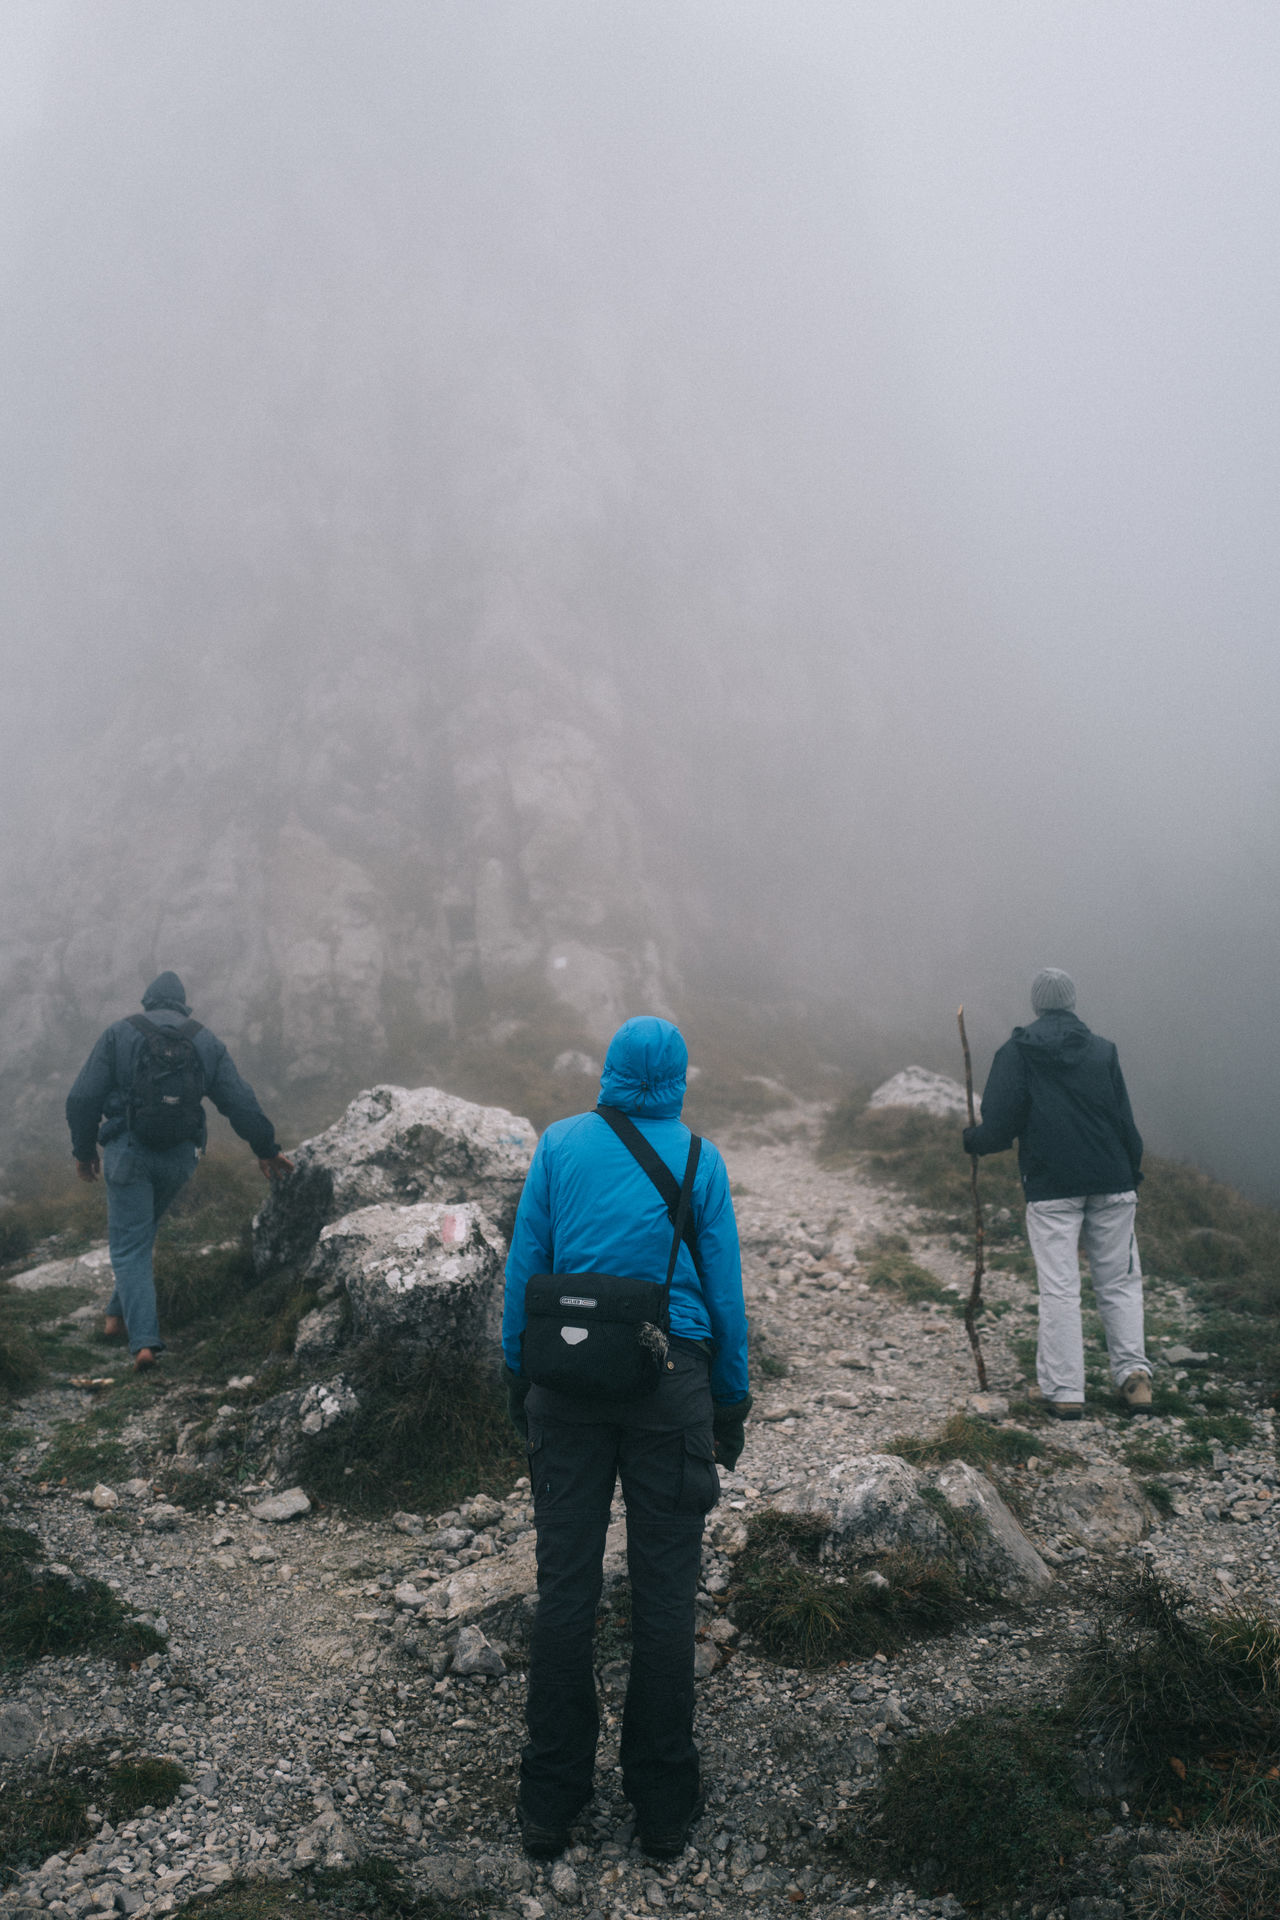 Beauty In Nature Day Fog Hiking Jacket Mountain Nature Outdoors People Rear View Warm Clothing Weather